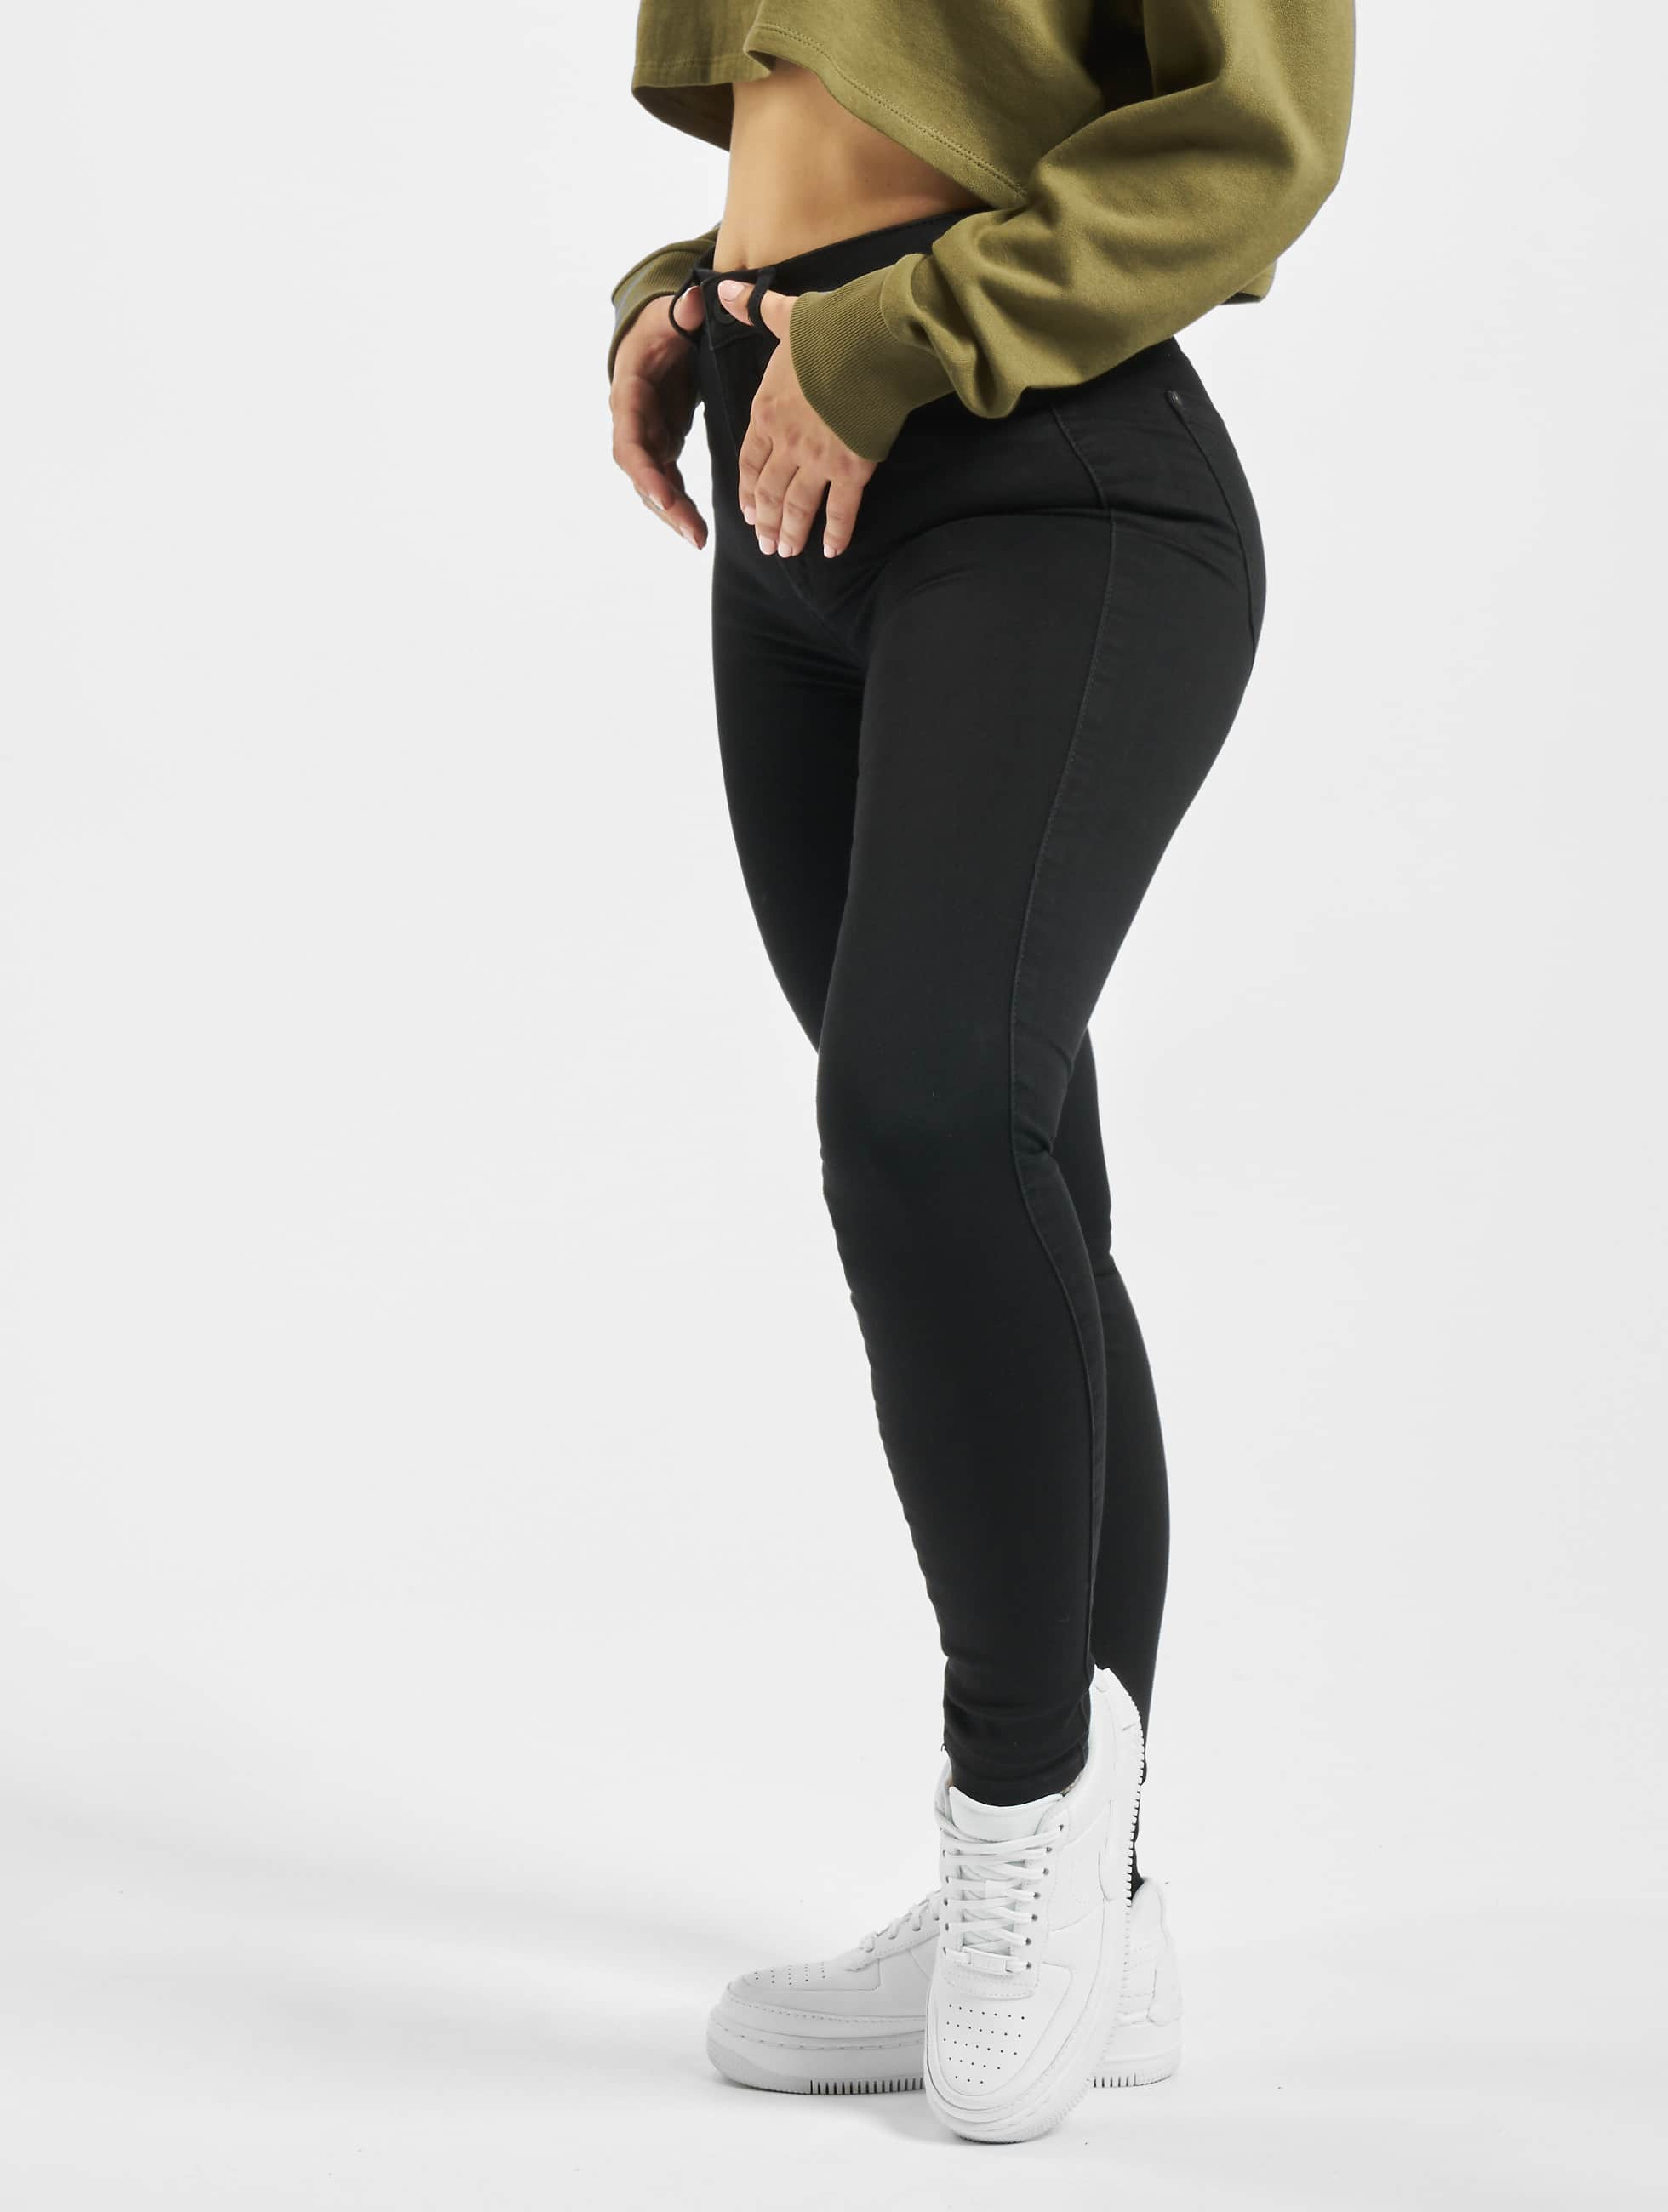 HIGH WAIST JEANS. Our selection of ONLY high waisted jeans is diverse in colours, washes and materials. From ripped and destroyed to classic blue denim and coated black variants, we have a model, that will match your need.